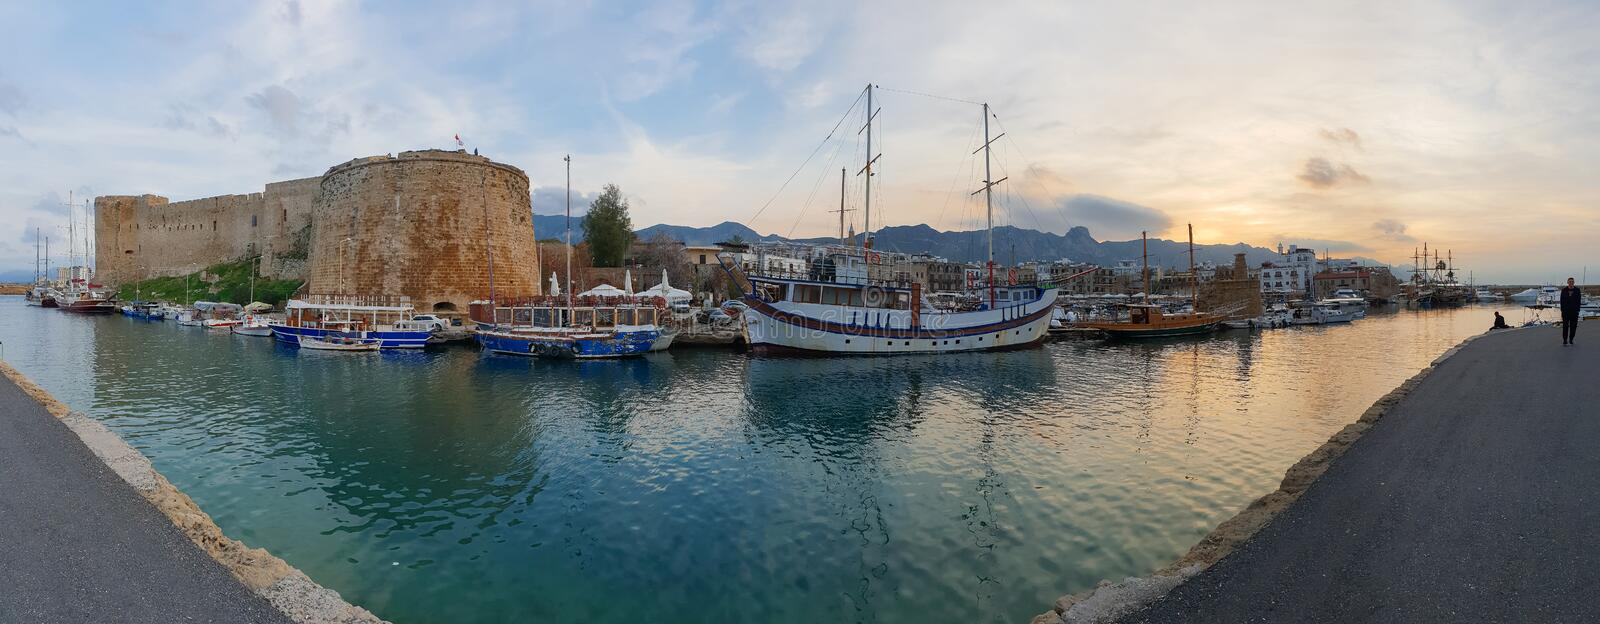 Panoramic capture of the historic 7th century AD Castle boats and old harbor in Kyrenia, Island of Cyprus stock photos